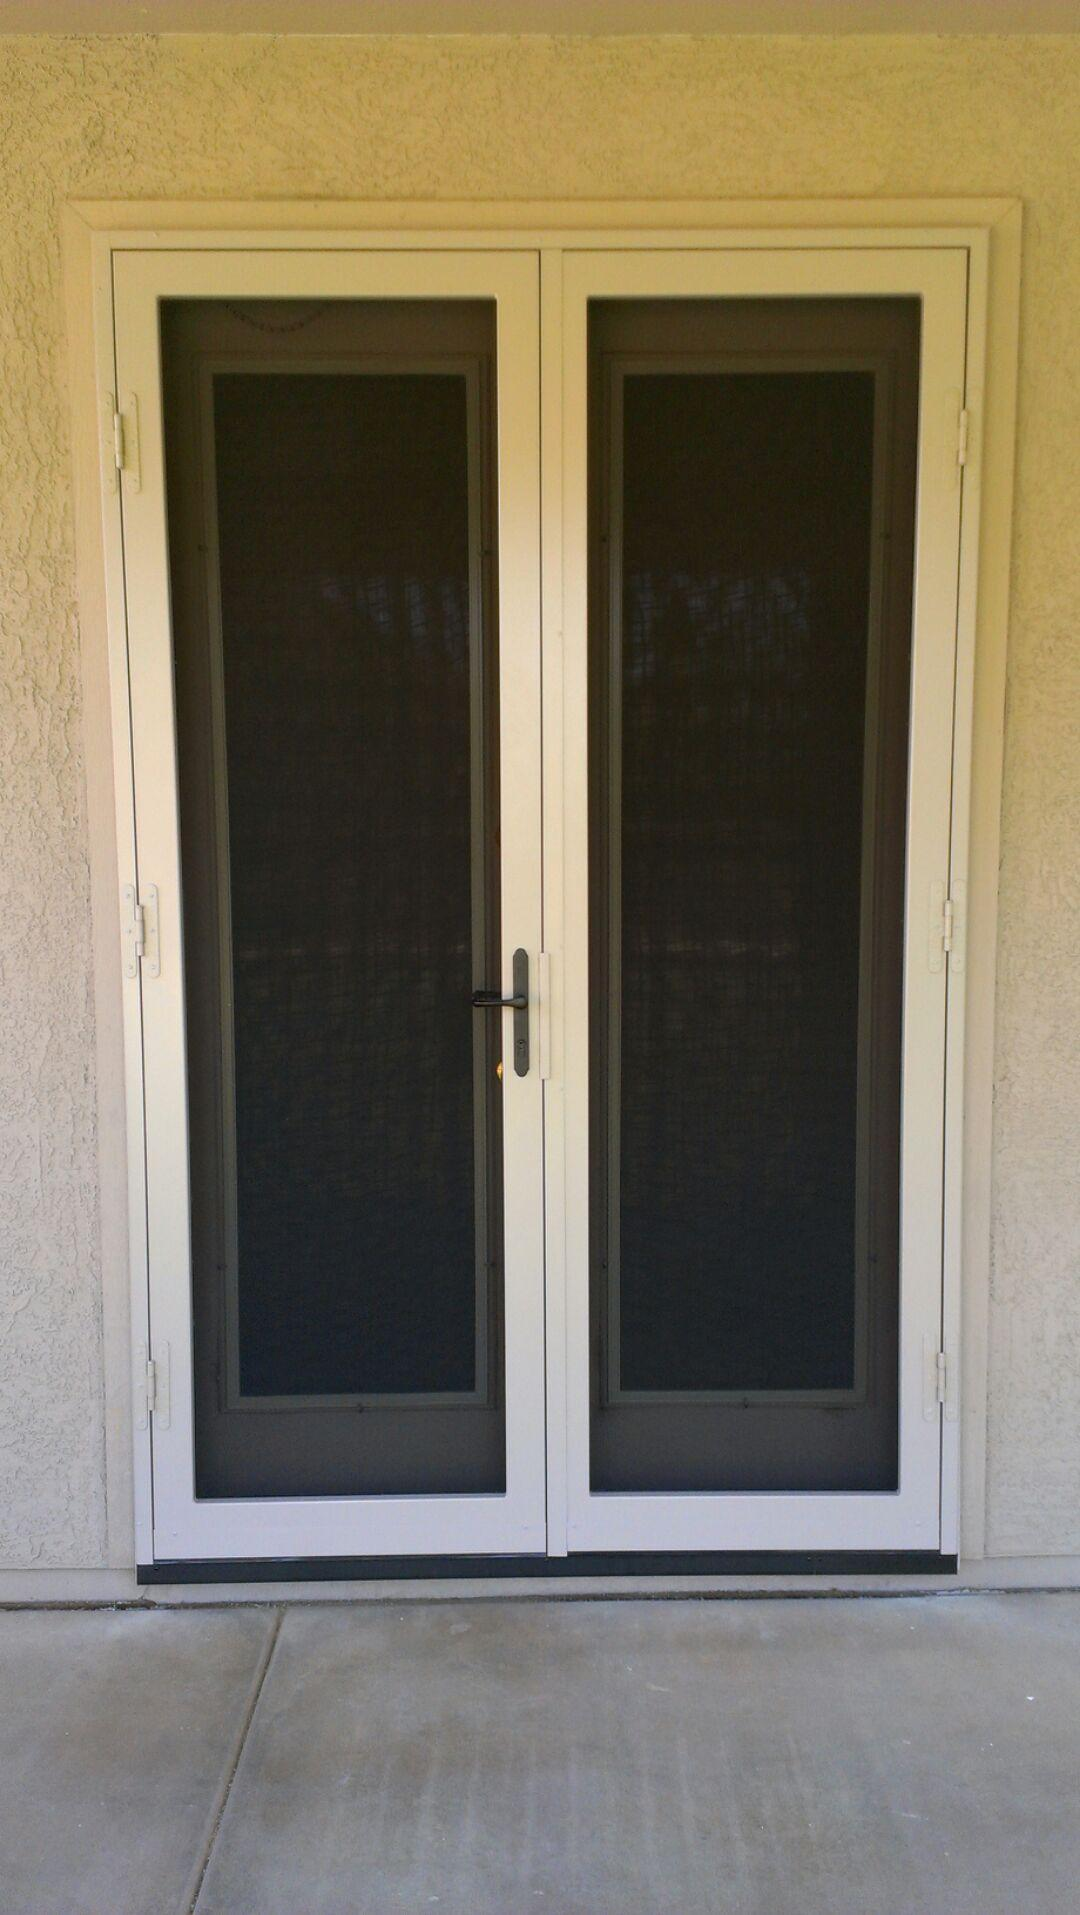 Aluminum Security Screen Door home | steel shield security doors & more